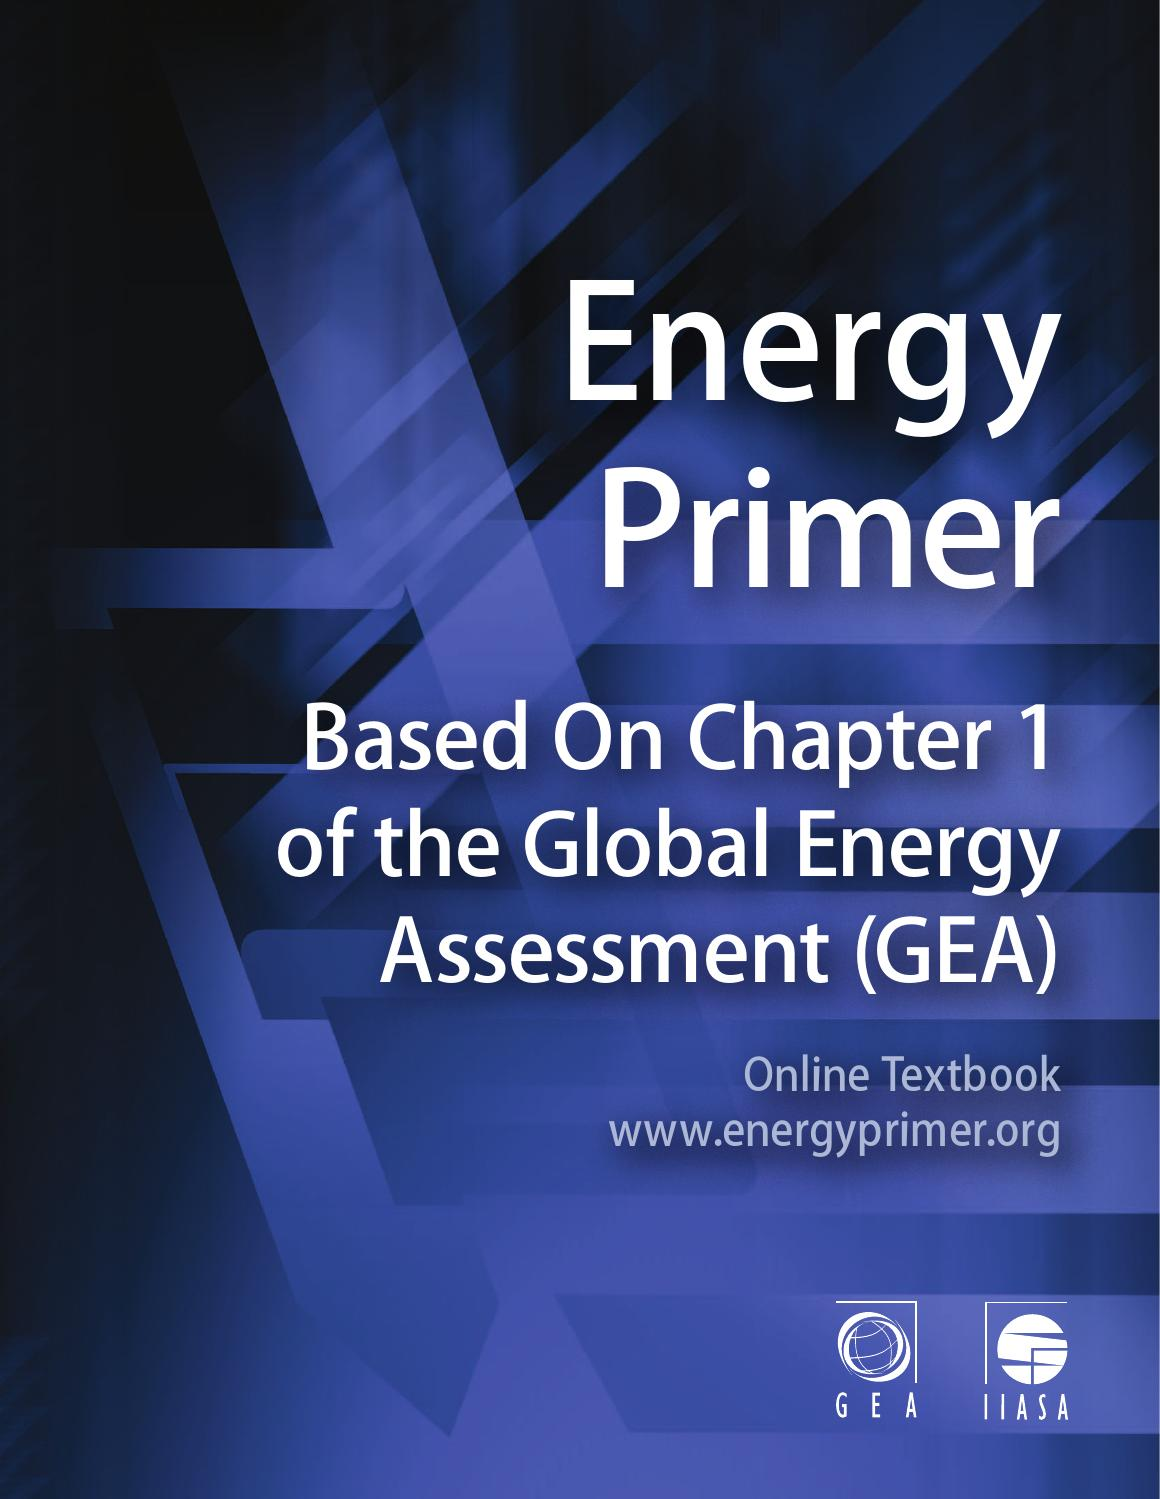 Energy Primer By Iiasa Issuu Displaying 19gt Images For Balanced Forces Diagram